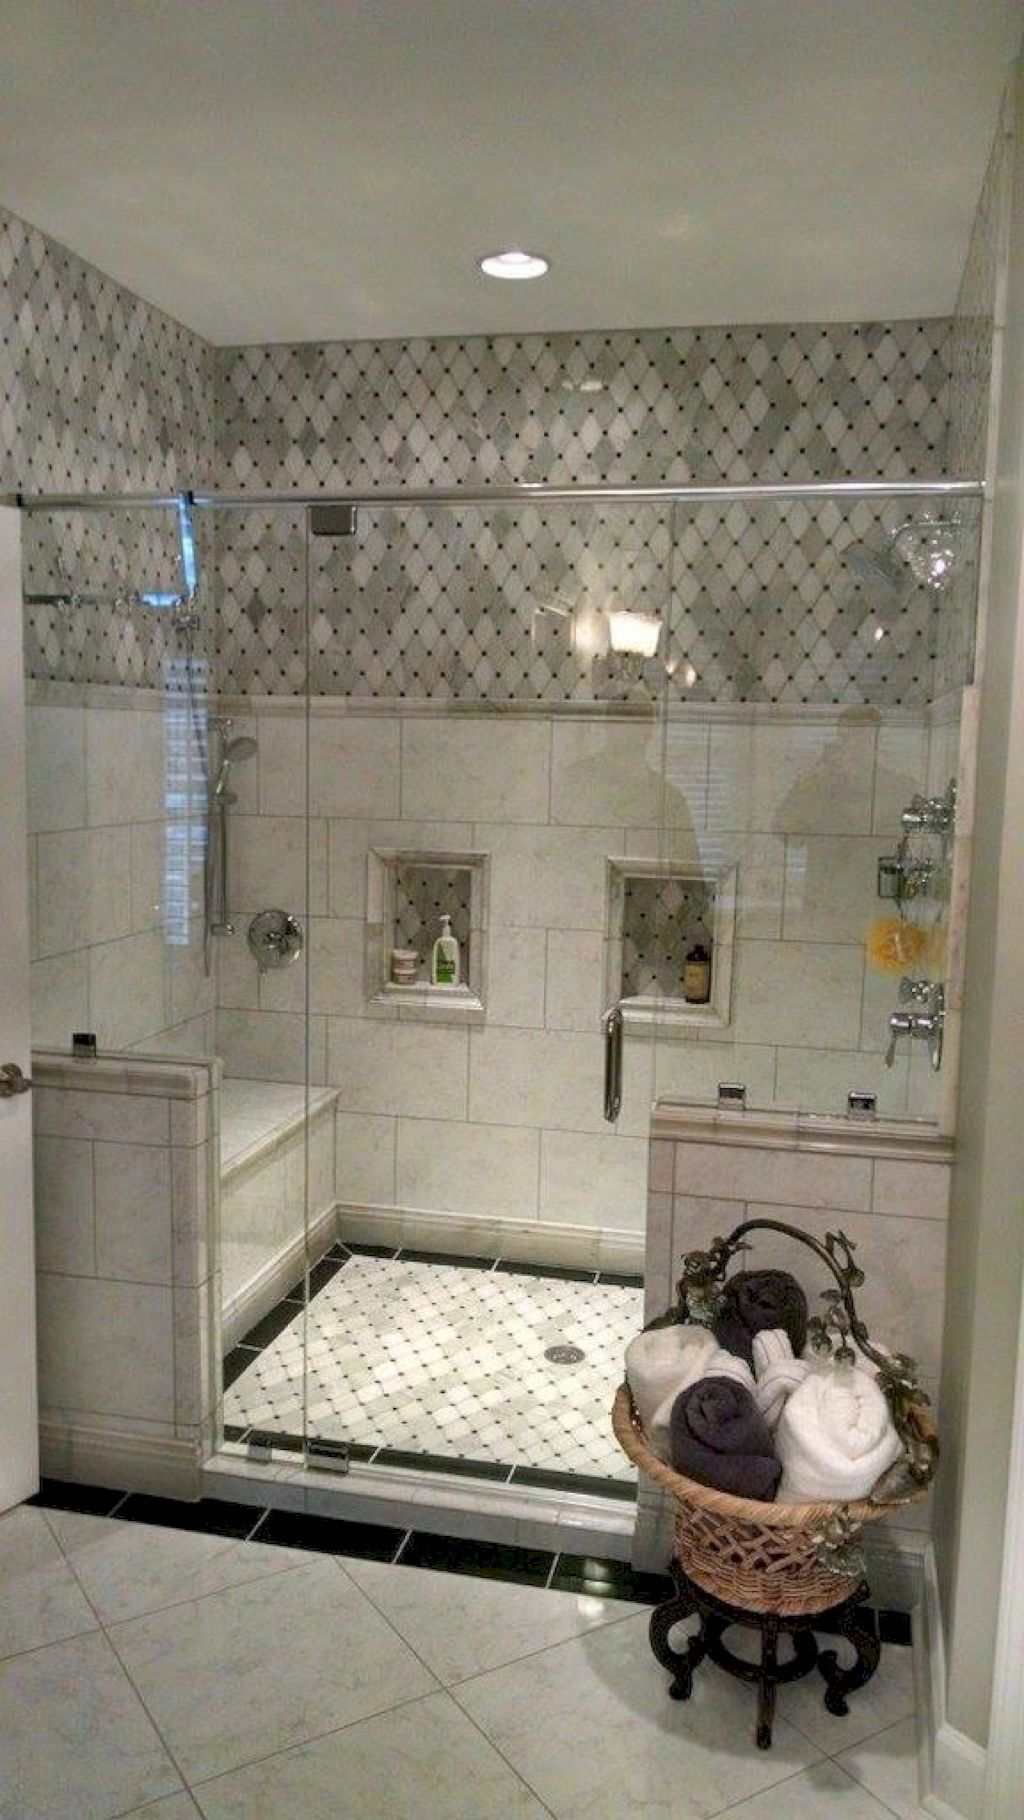 50 Awesome Master Bathroom Remodel Ideas Small Master Bathroom Bathroom Remodel Designs Master Bathroom Design